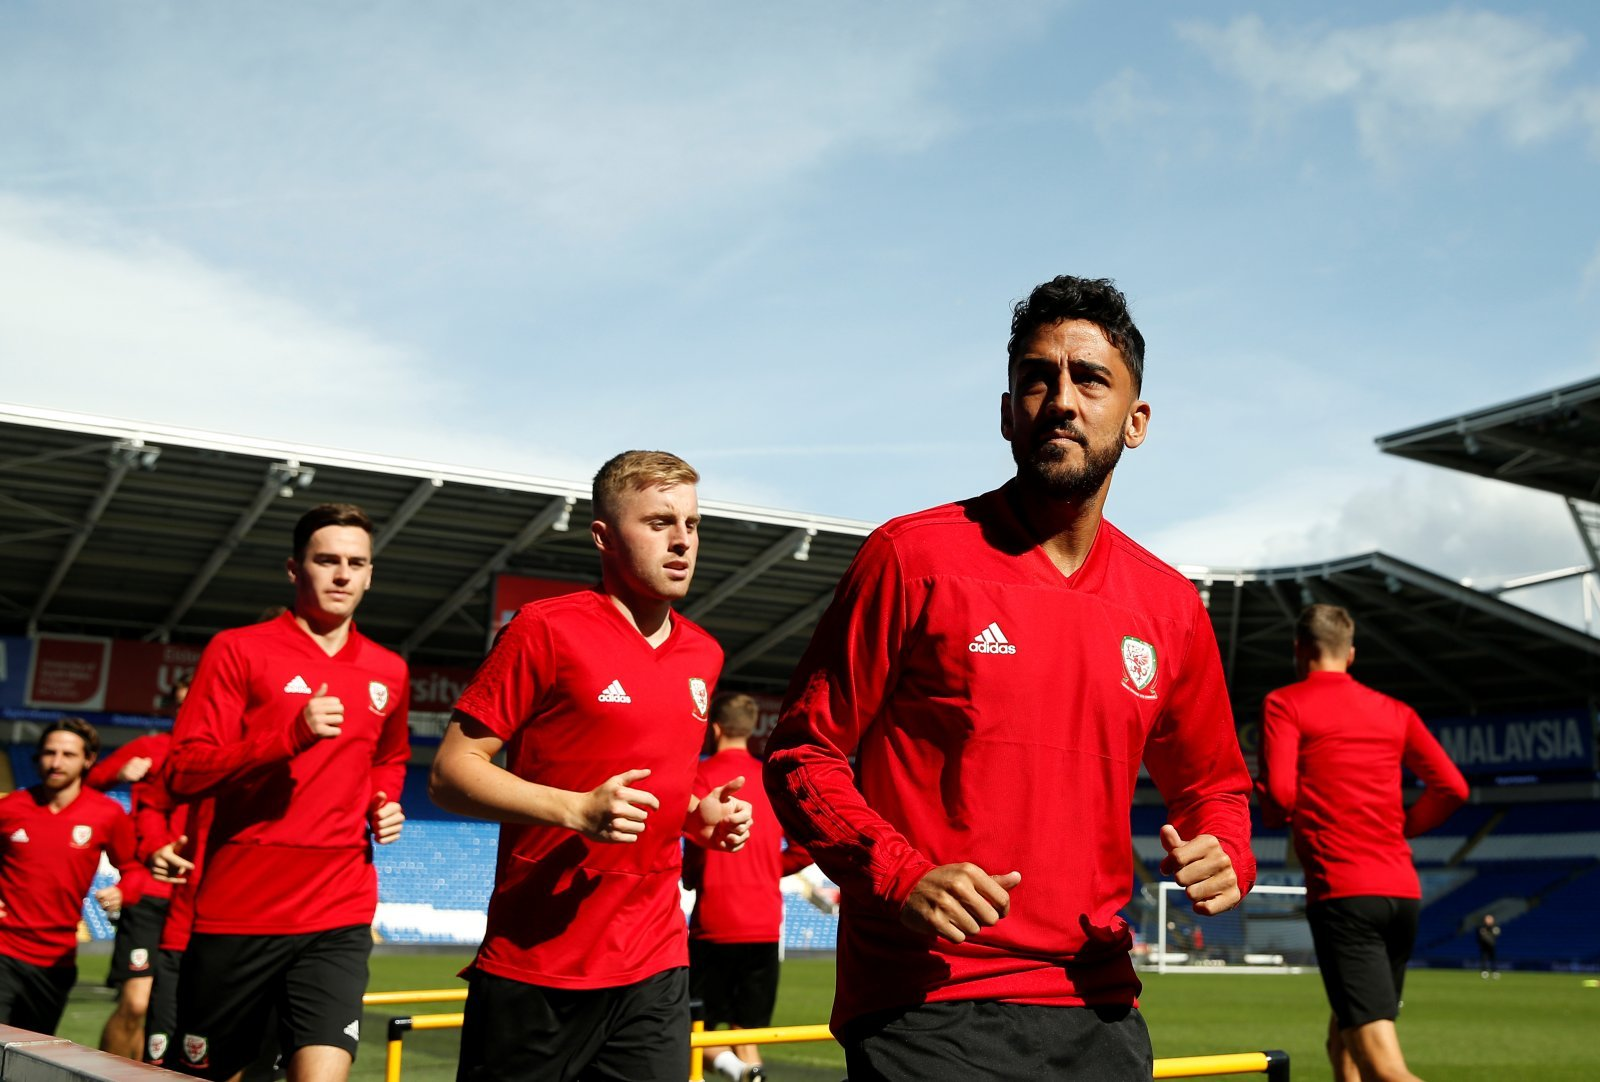 Aston Villa: Neil Taylor called up to Wales squad for November internationals